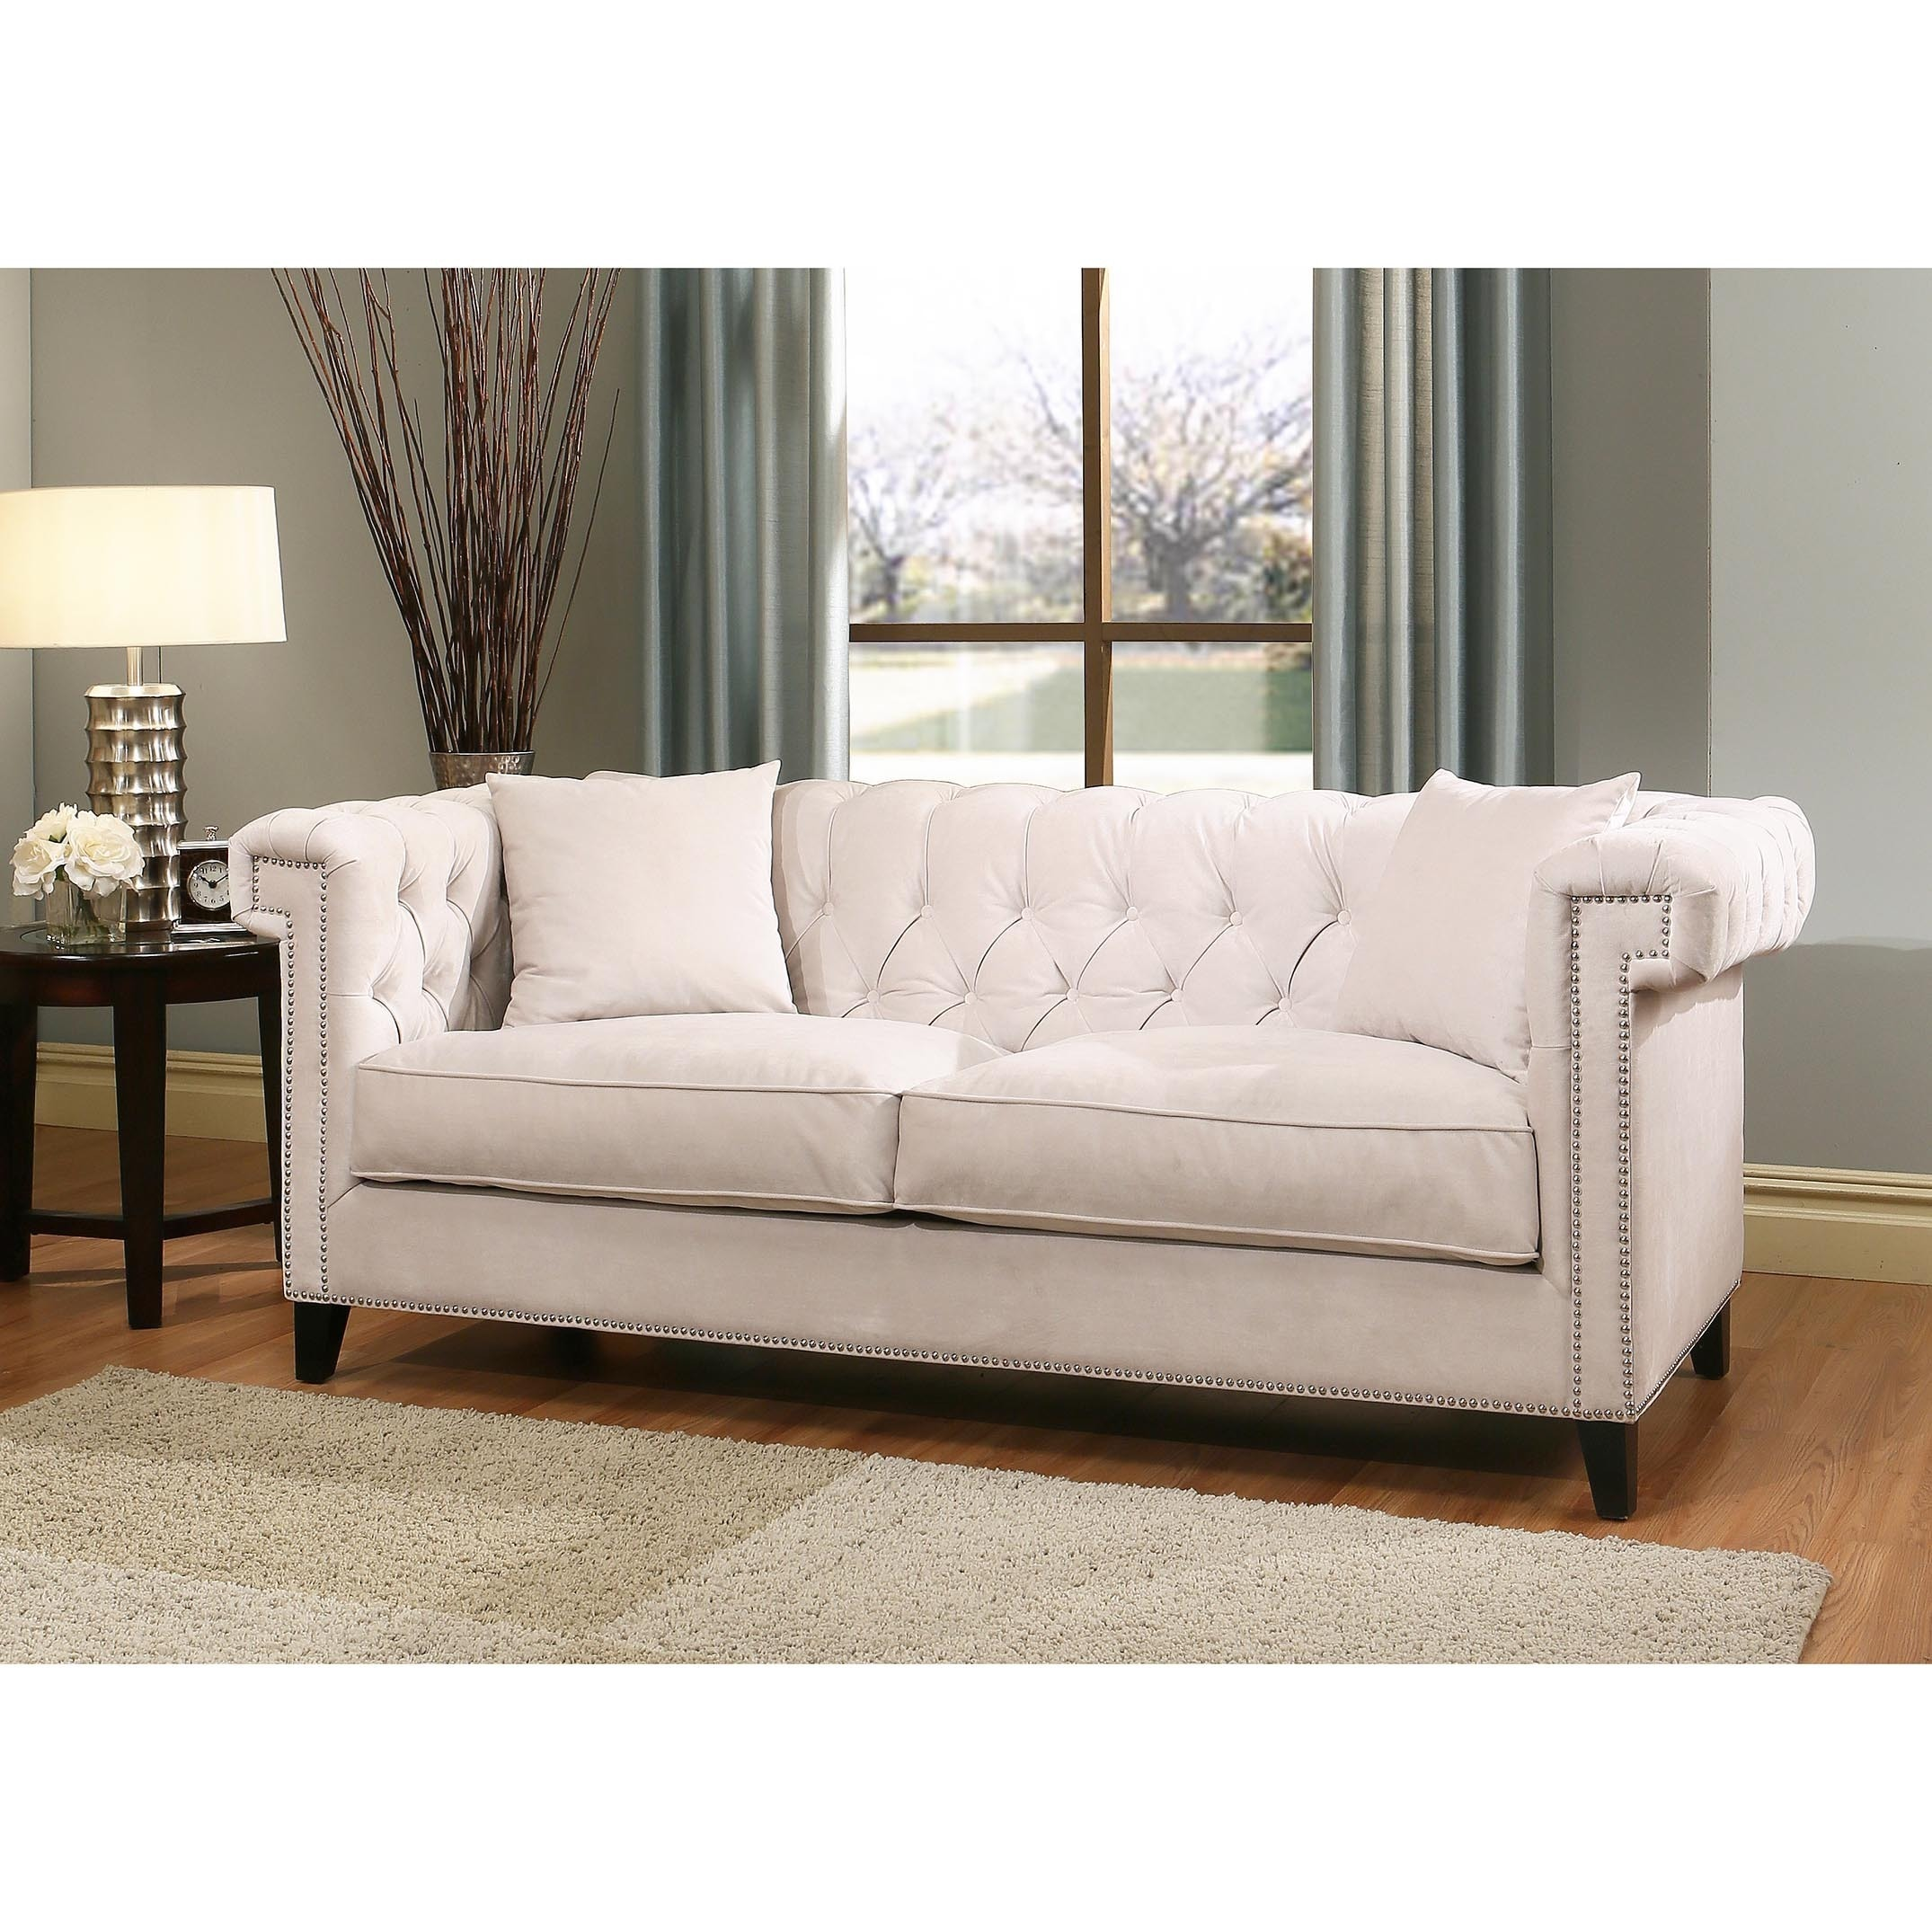 Shop Abbyson Victoria Ivory Velvet Sofa And Armchair Set   Free Shipping  Today   Overstock.com   12448932